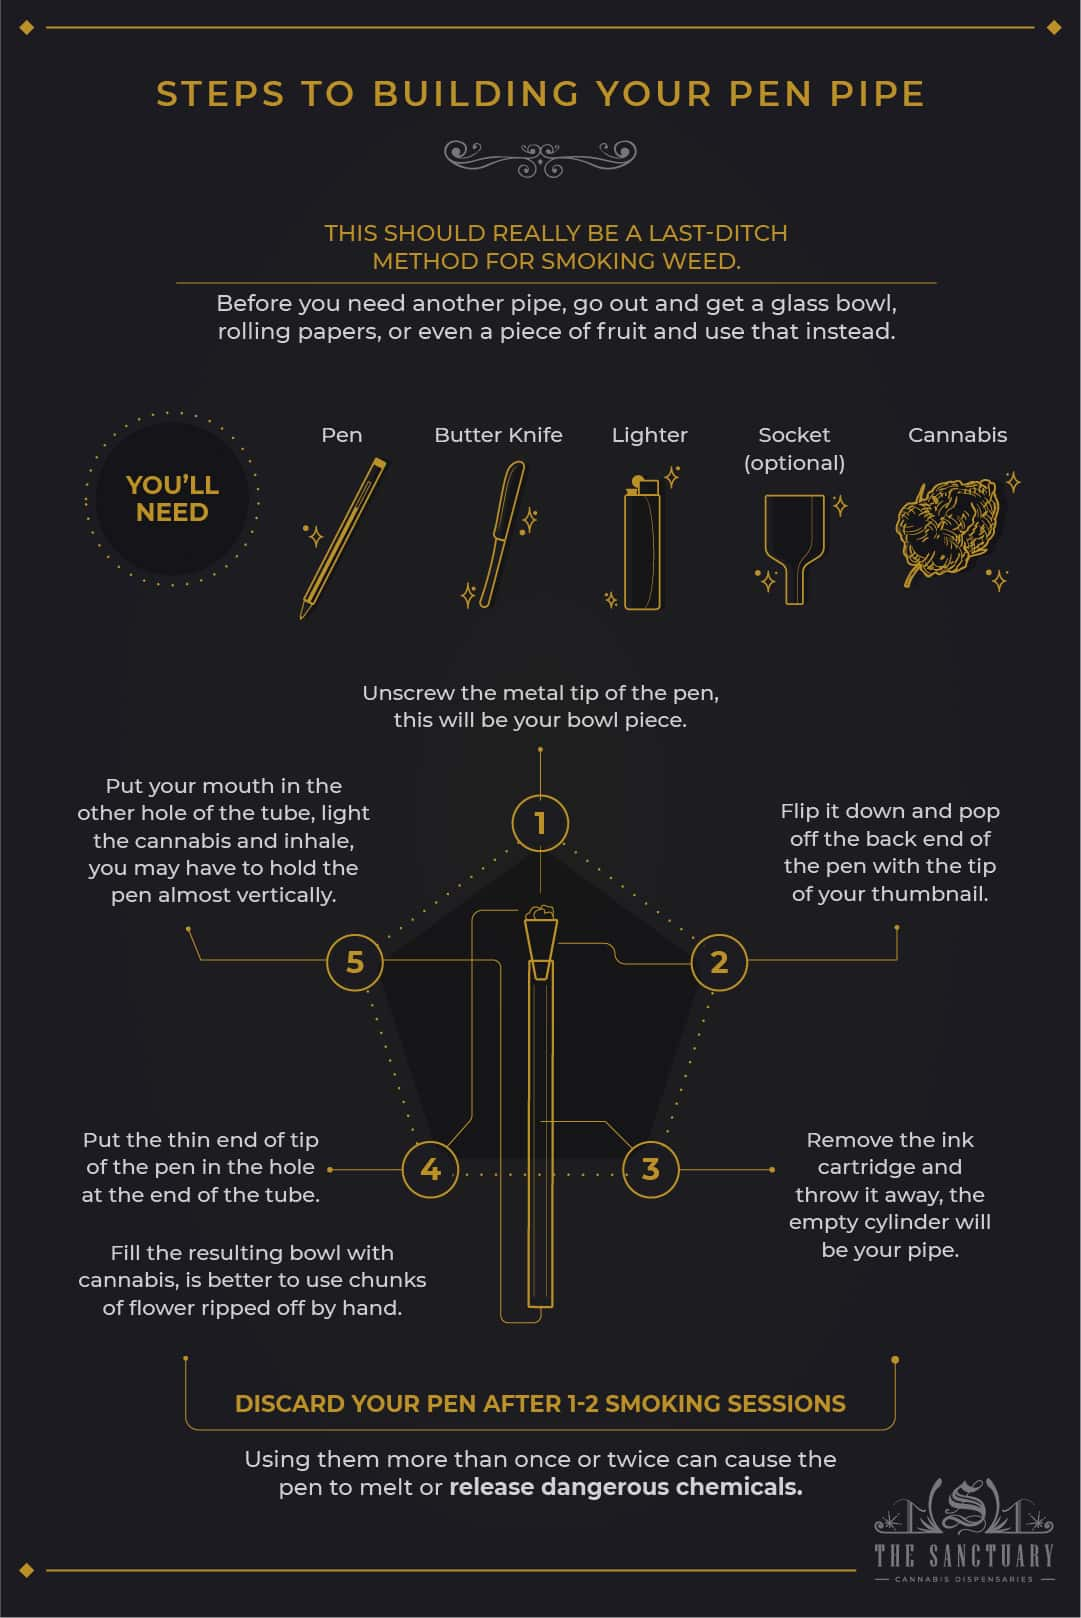 Steps to building your pen pipe